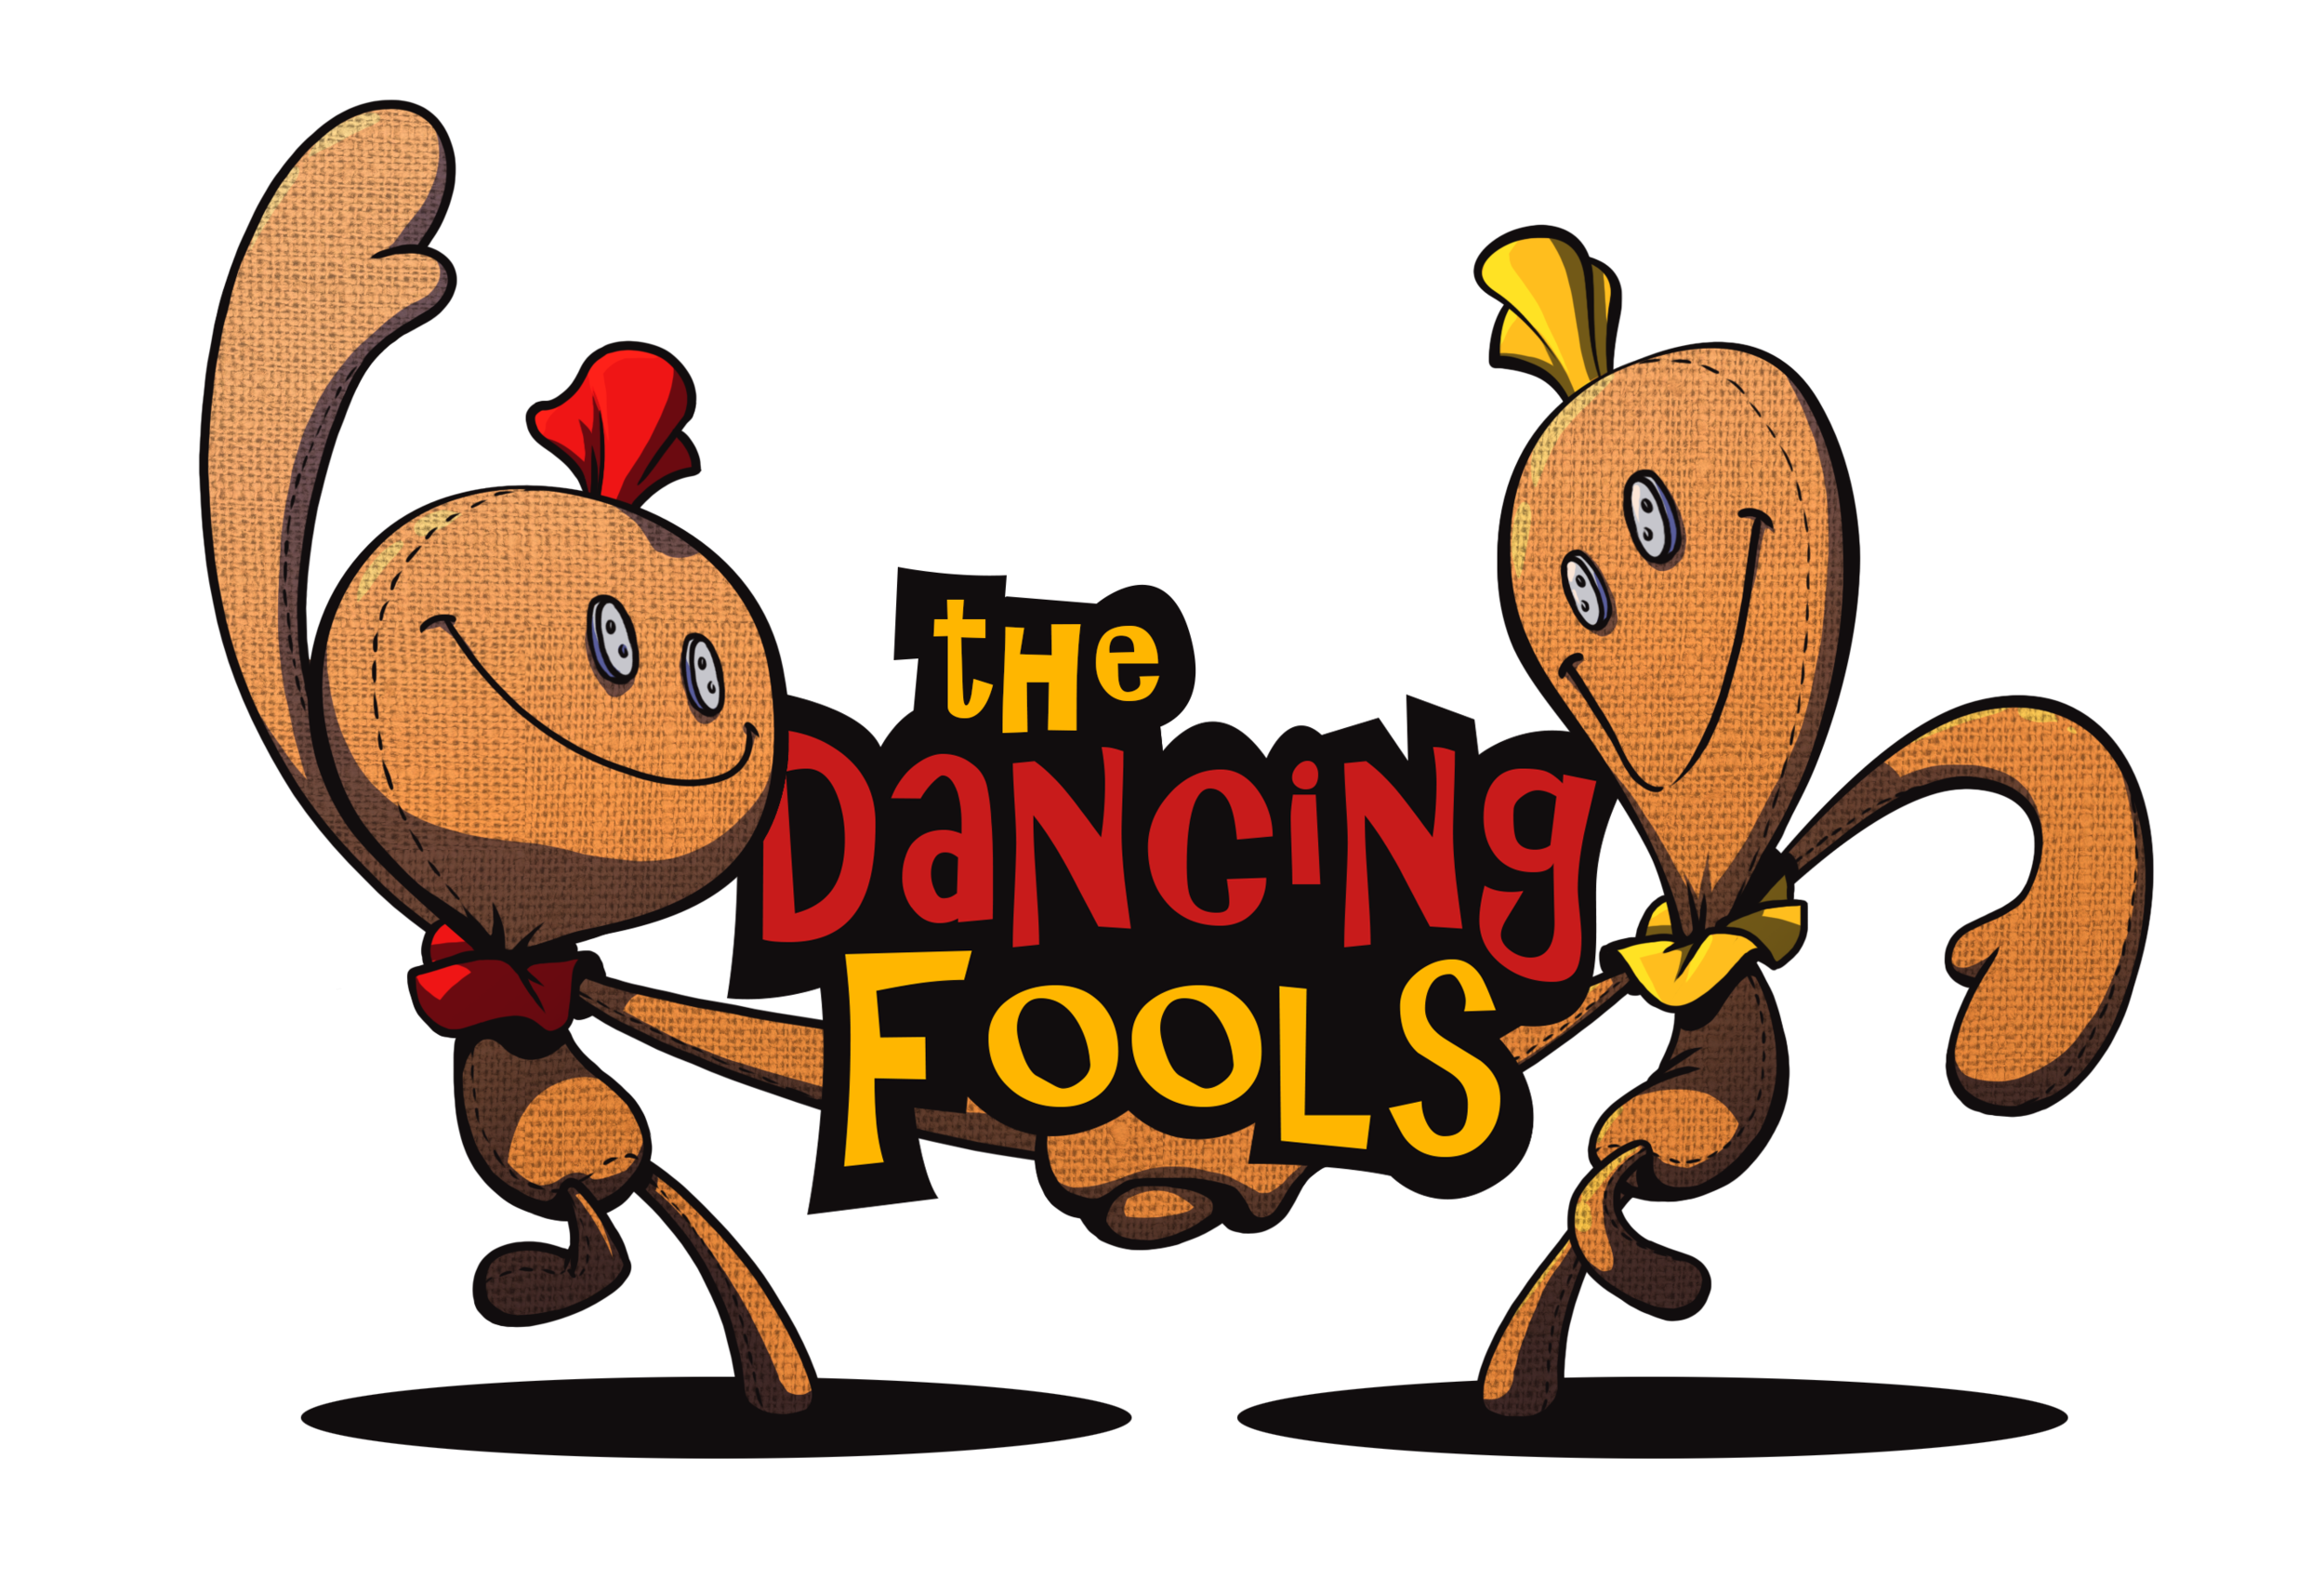 thedancingfools_logo_transparent.png